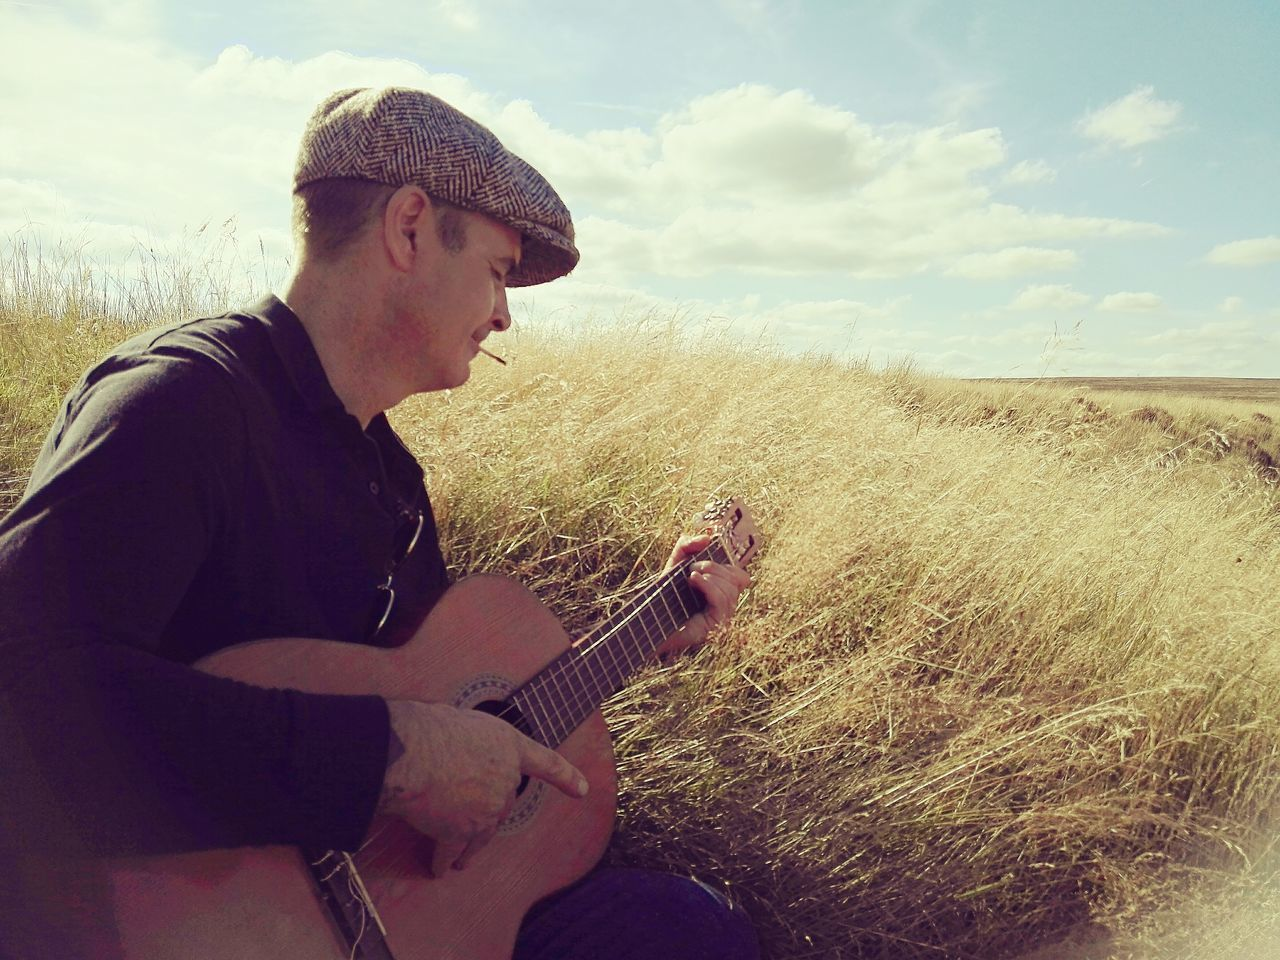 Grass Sky Field Cloud Cloud - Sky Nature Summer Lazysunday Grassy Musicman Summerdays  Longgrass Derbyshire Enjoy Life Guitarman Guitar Relaxation Countryside Outdoors Enjoying Life Tranquility Gorgeousglen Portrait Portaitphotography Peopleandplaces